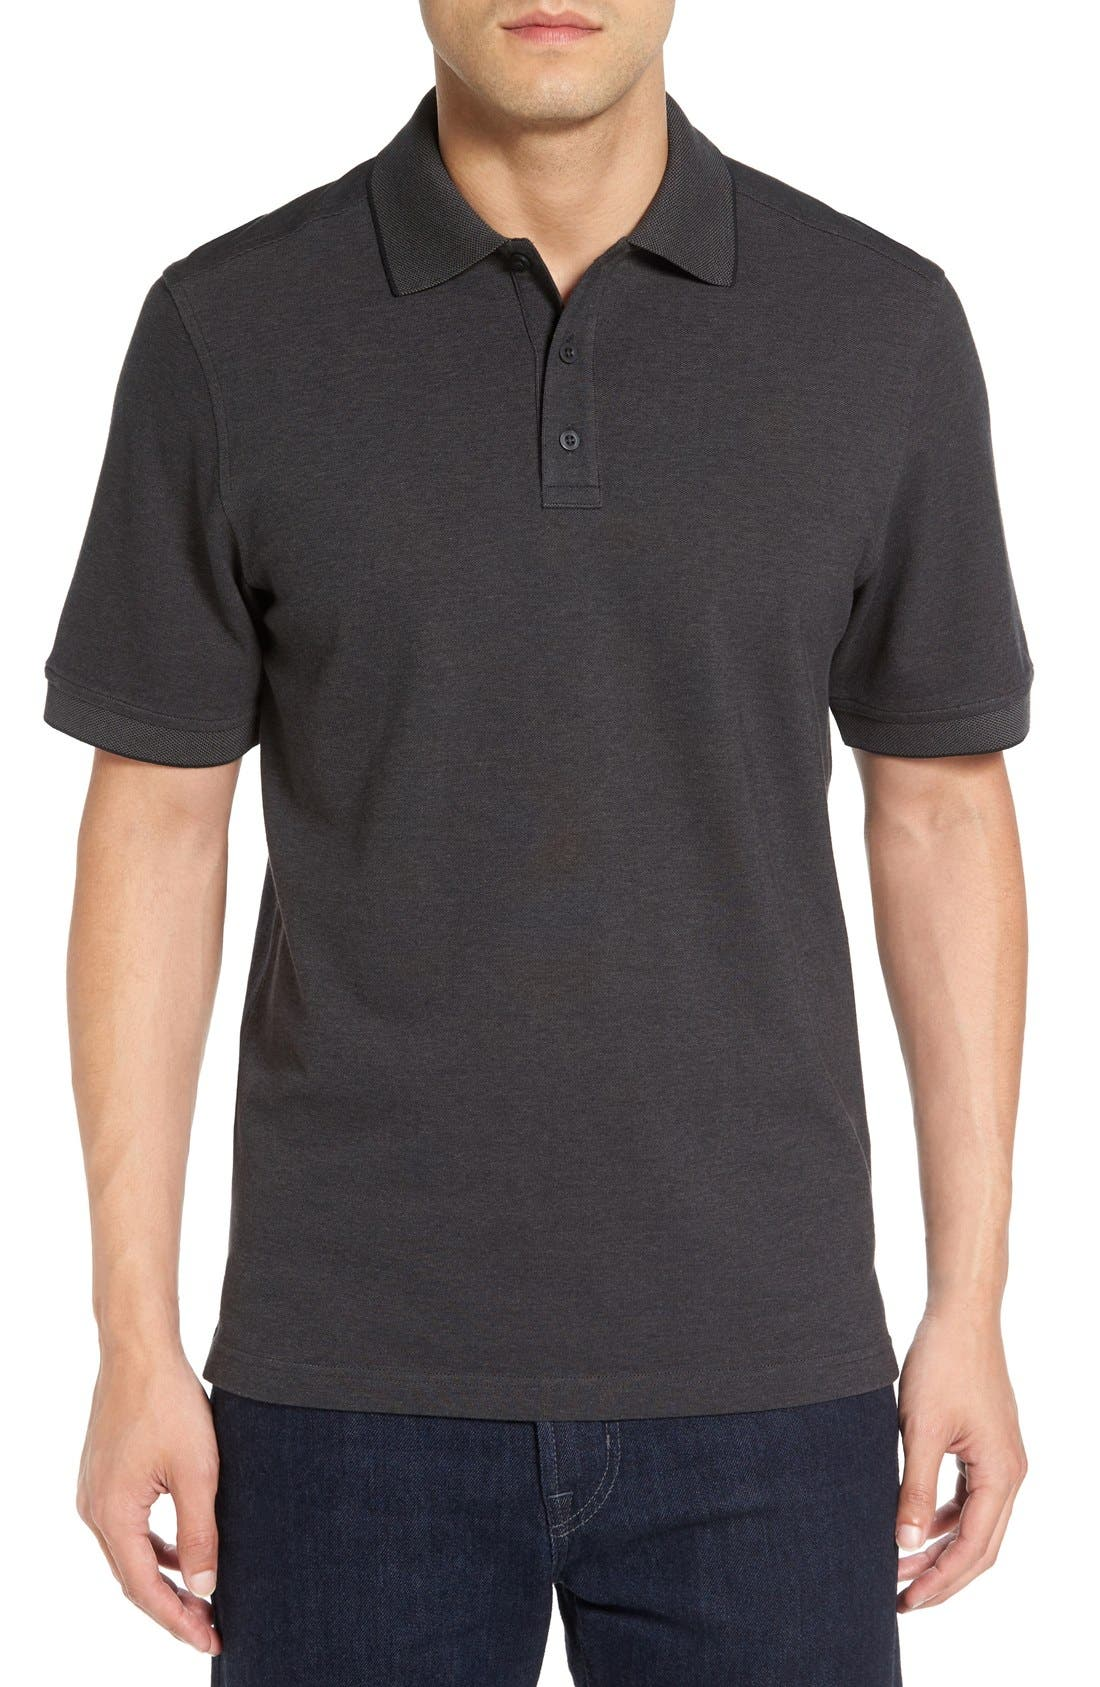 Nordstrom Men's Shop Oxford Piqué Polo (Tall)